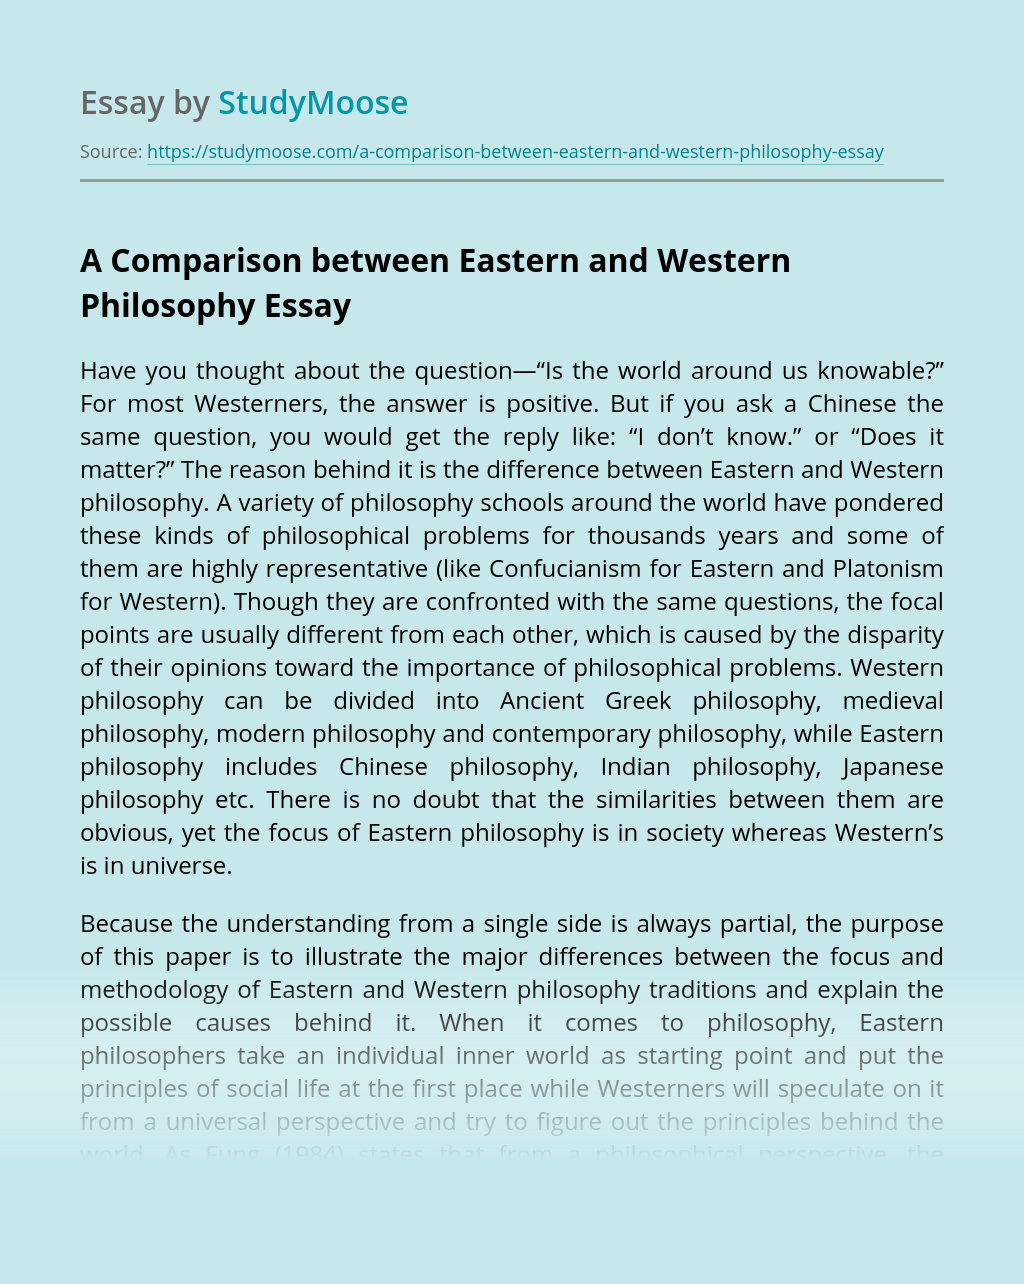 A Comparison between Eastern and Western Philosophy